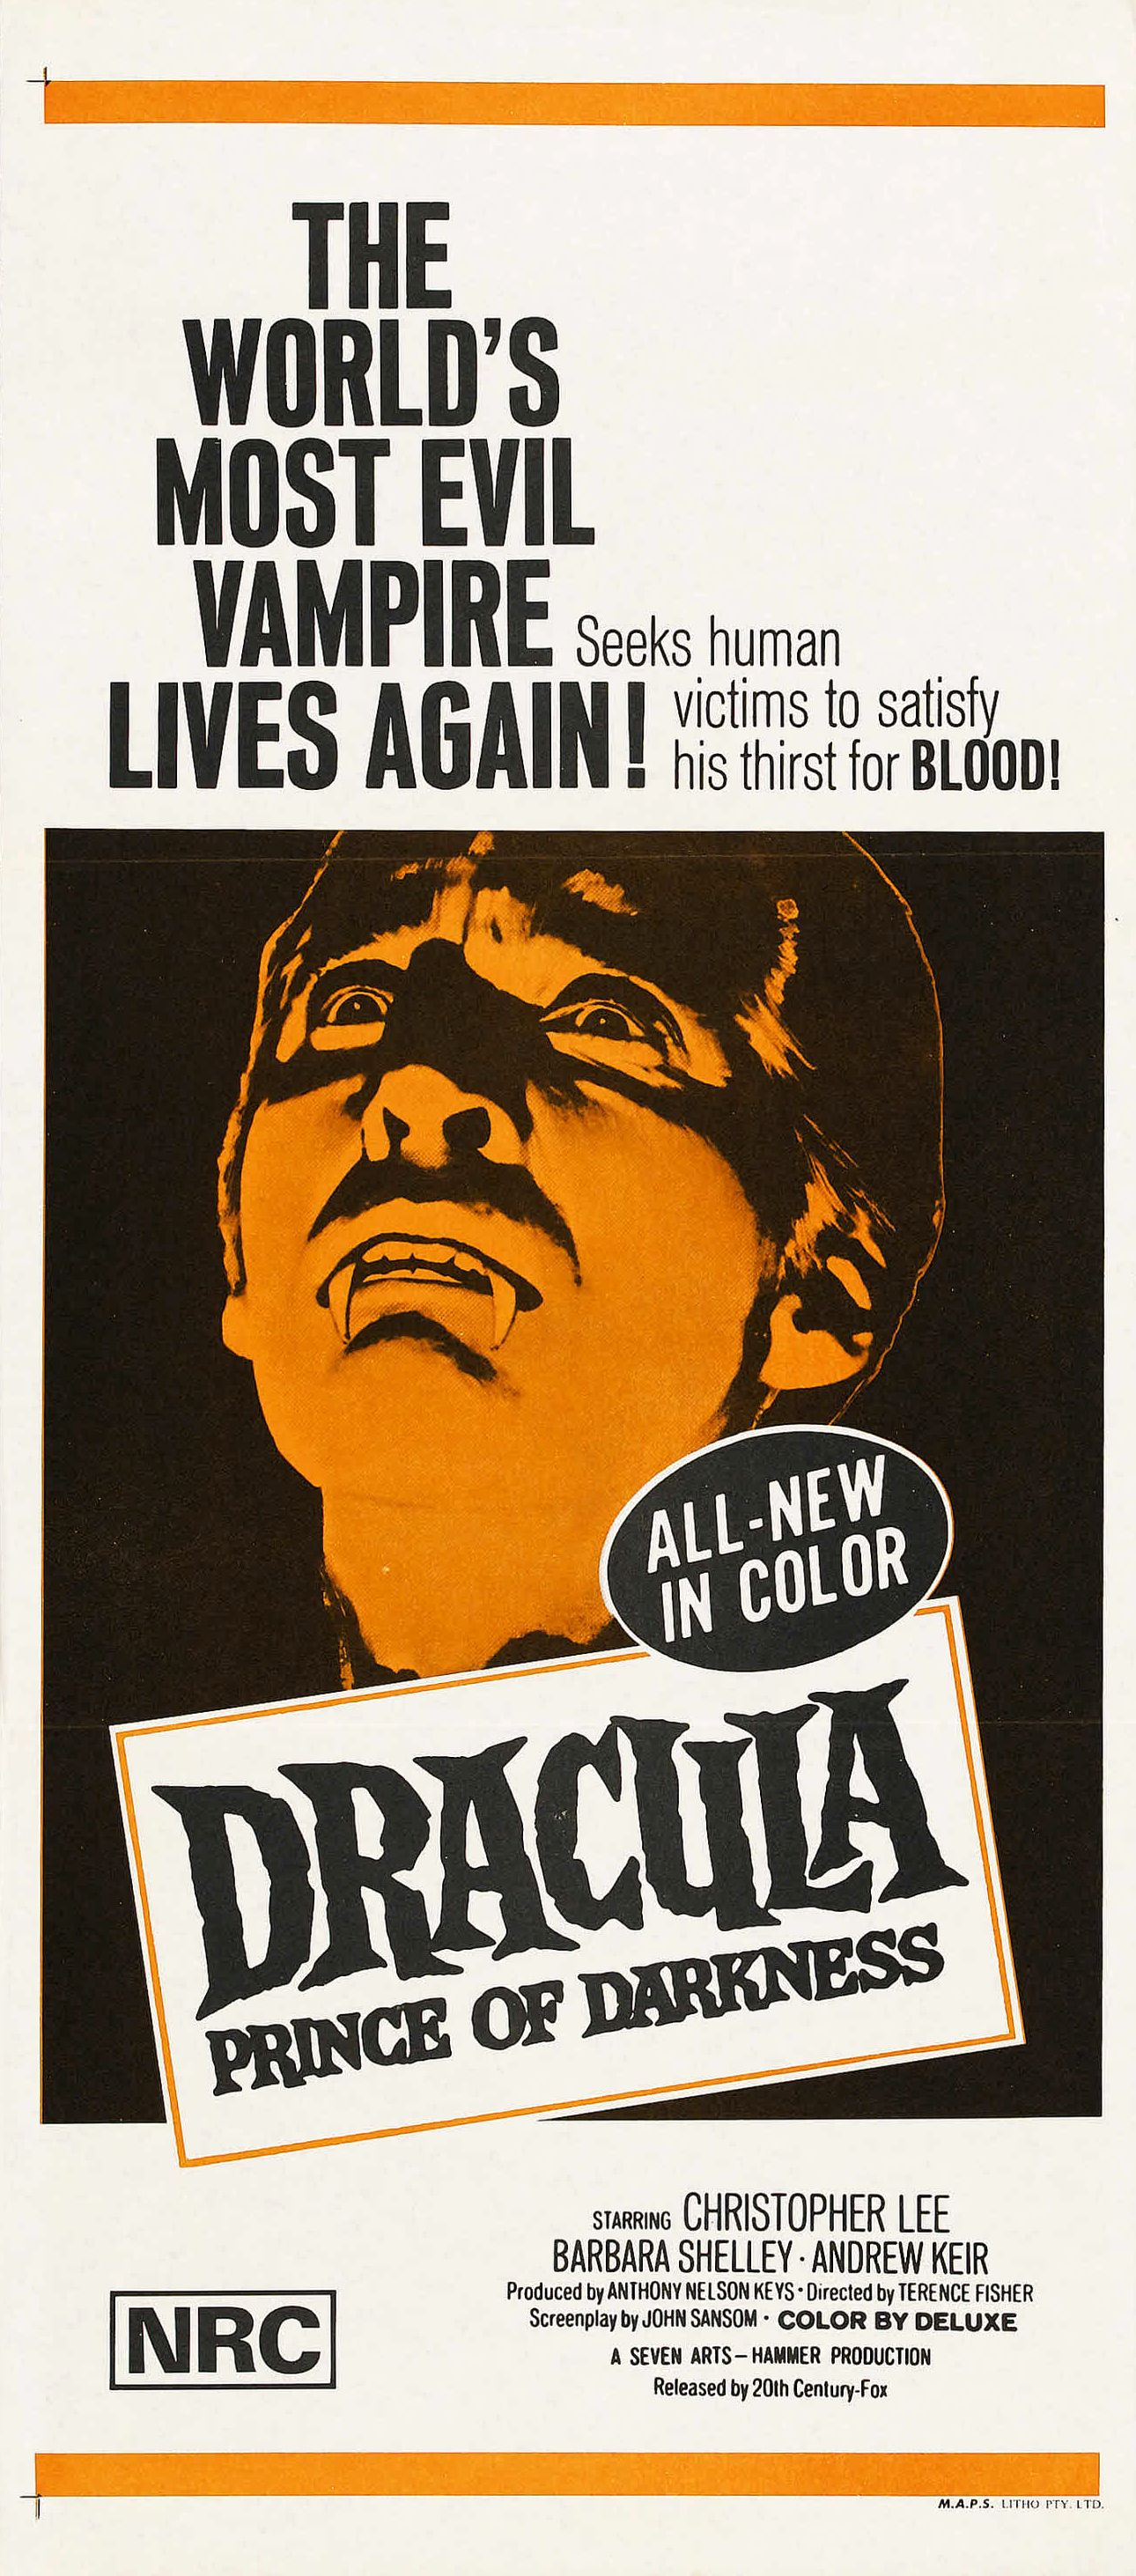 Dracula The Dark Prince Poster images